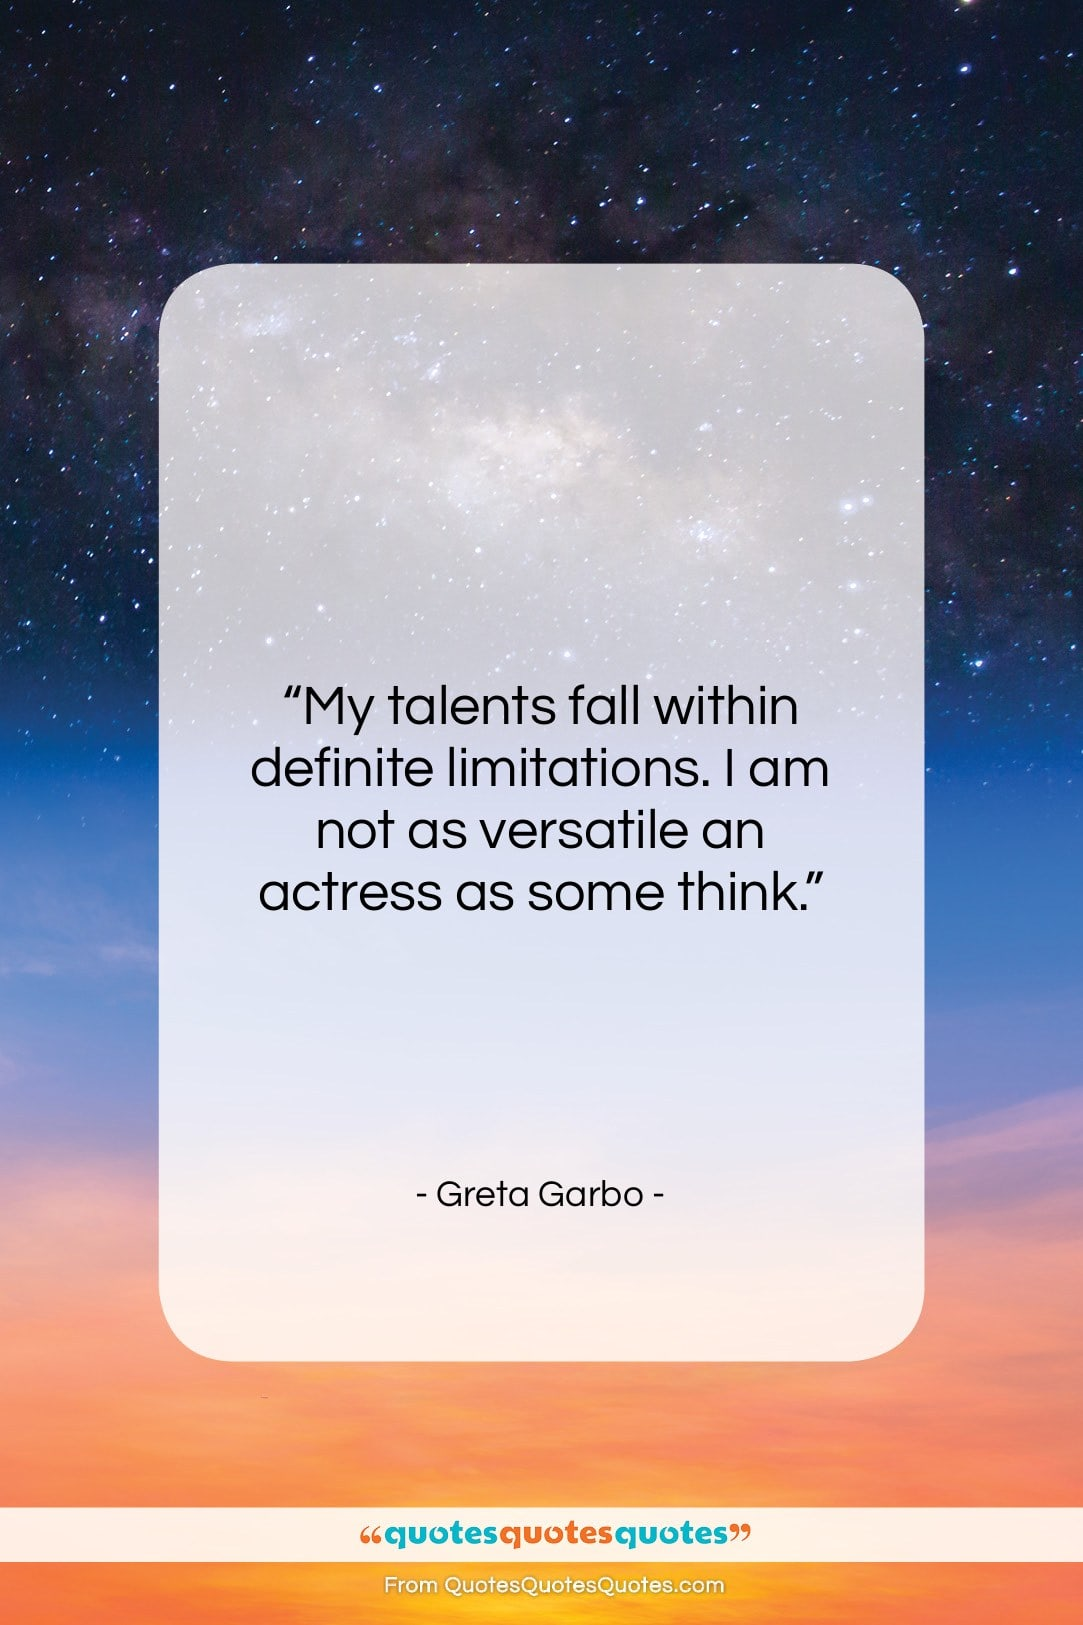 """Greta Garbo quote: """"My talents fall within definite limitations. I…""""- at QuotesQuotesQuotes.com"""